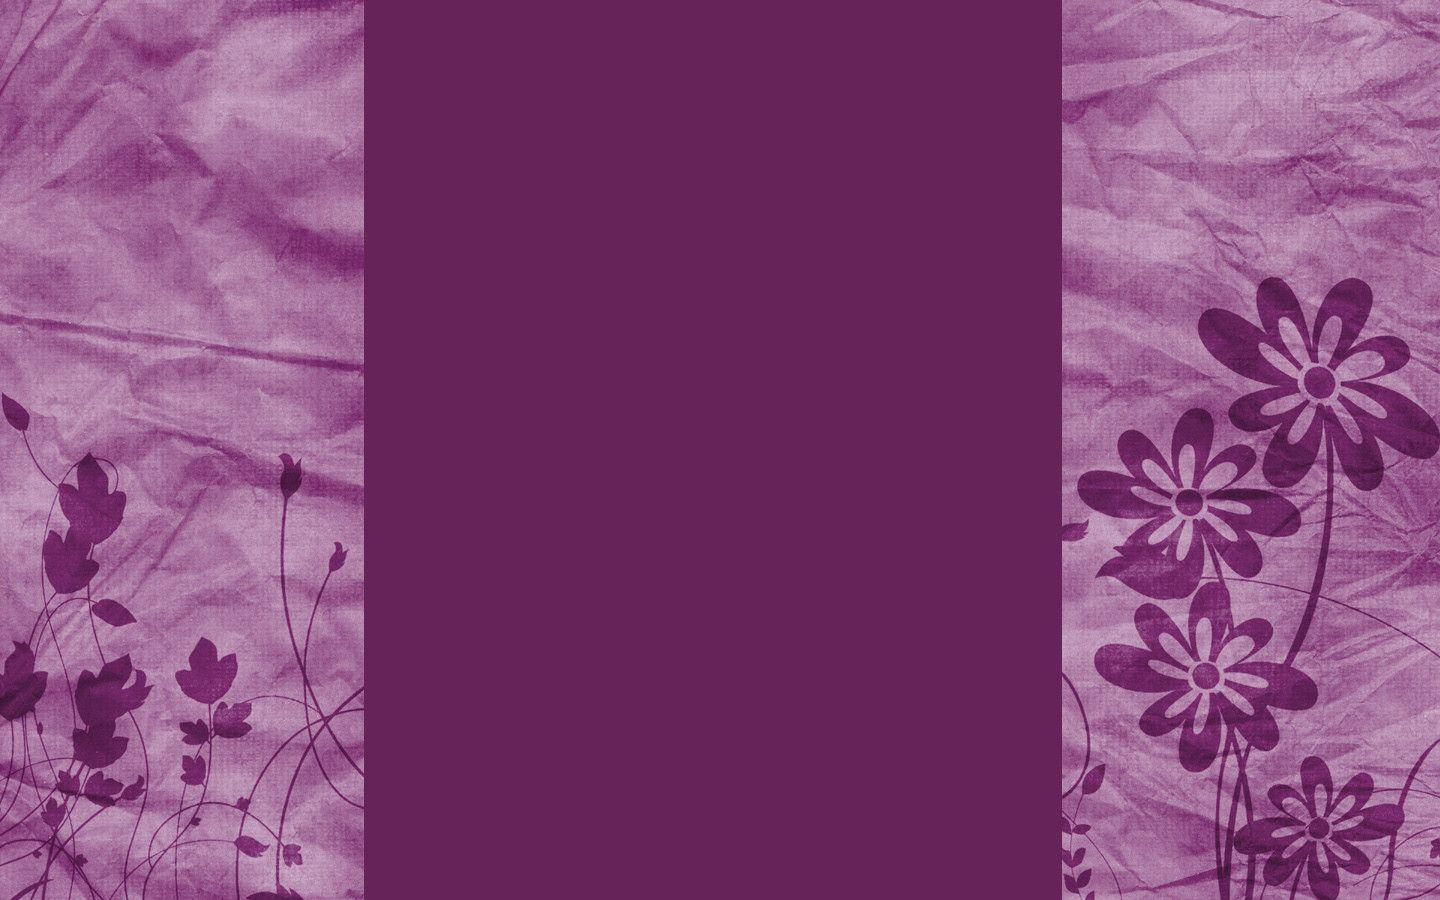 Light Purple Flowers Background Hd Images 3 HD Wallpapers ...